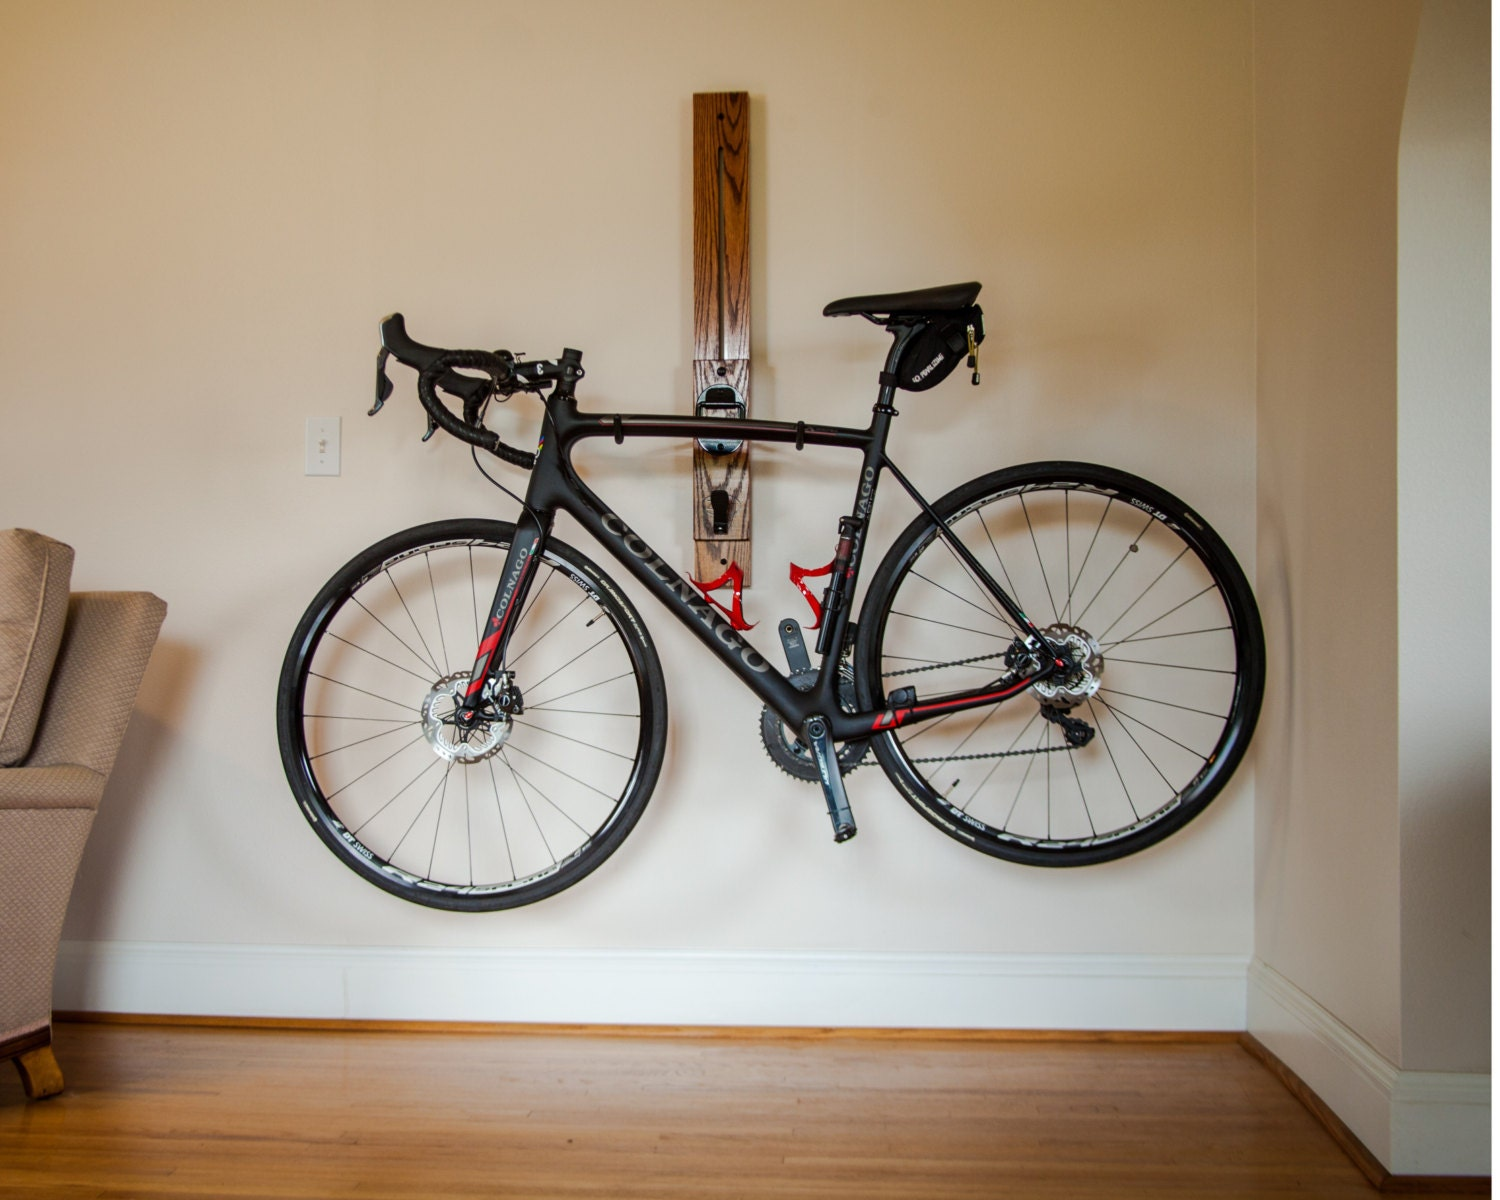 bike rack 3 39 horizontal wall mount adjustable bike rack. Black Bedroom Furniture Sets. Home Design Ideas